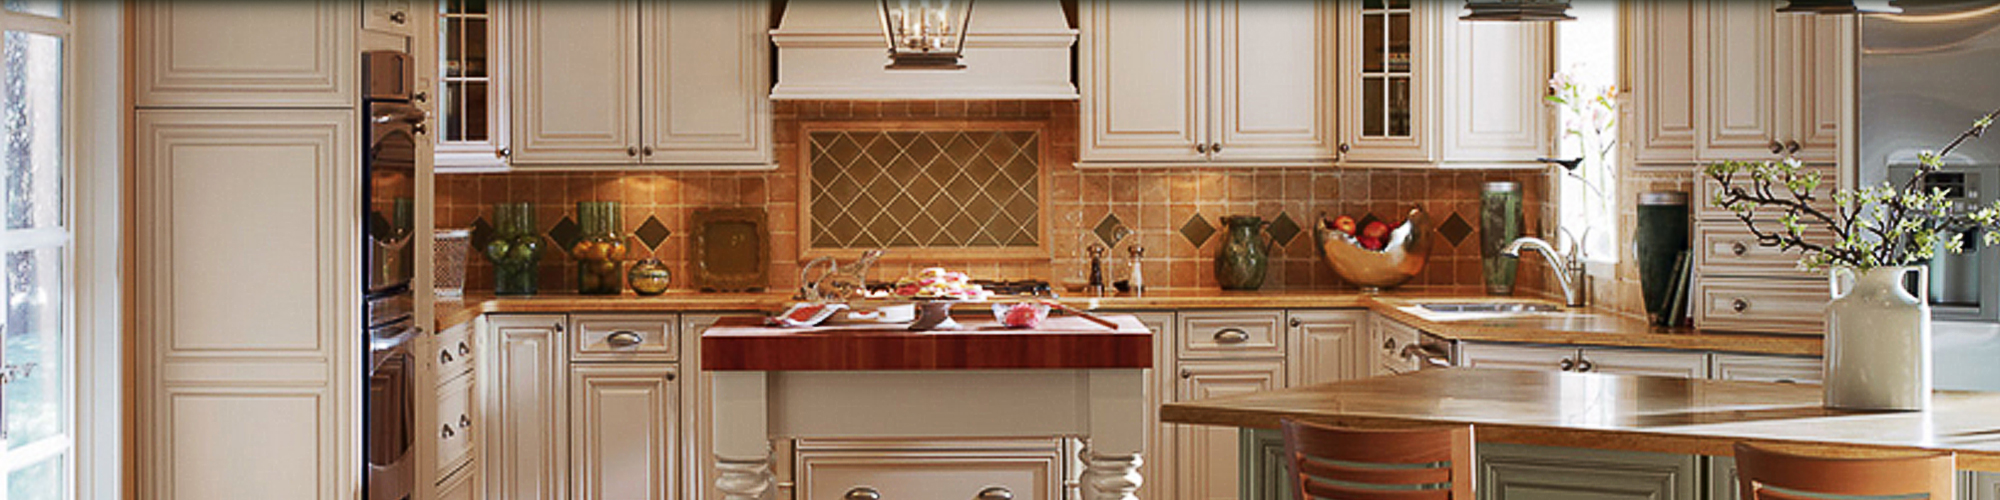 affordable kitchens and baths cast iron kitchen sinks for sale bath designs cabinets gloversville ny